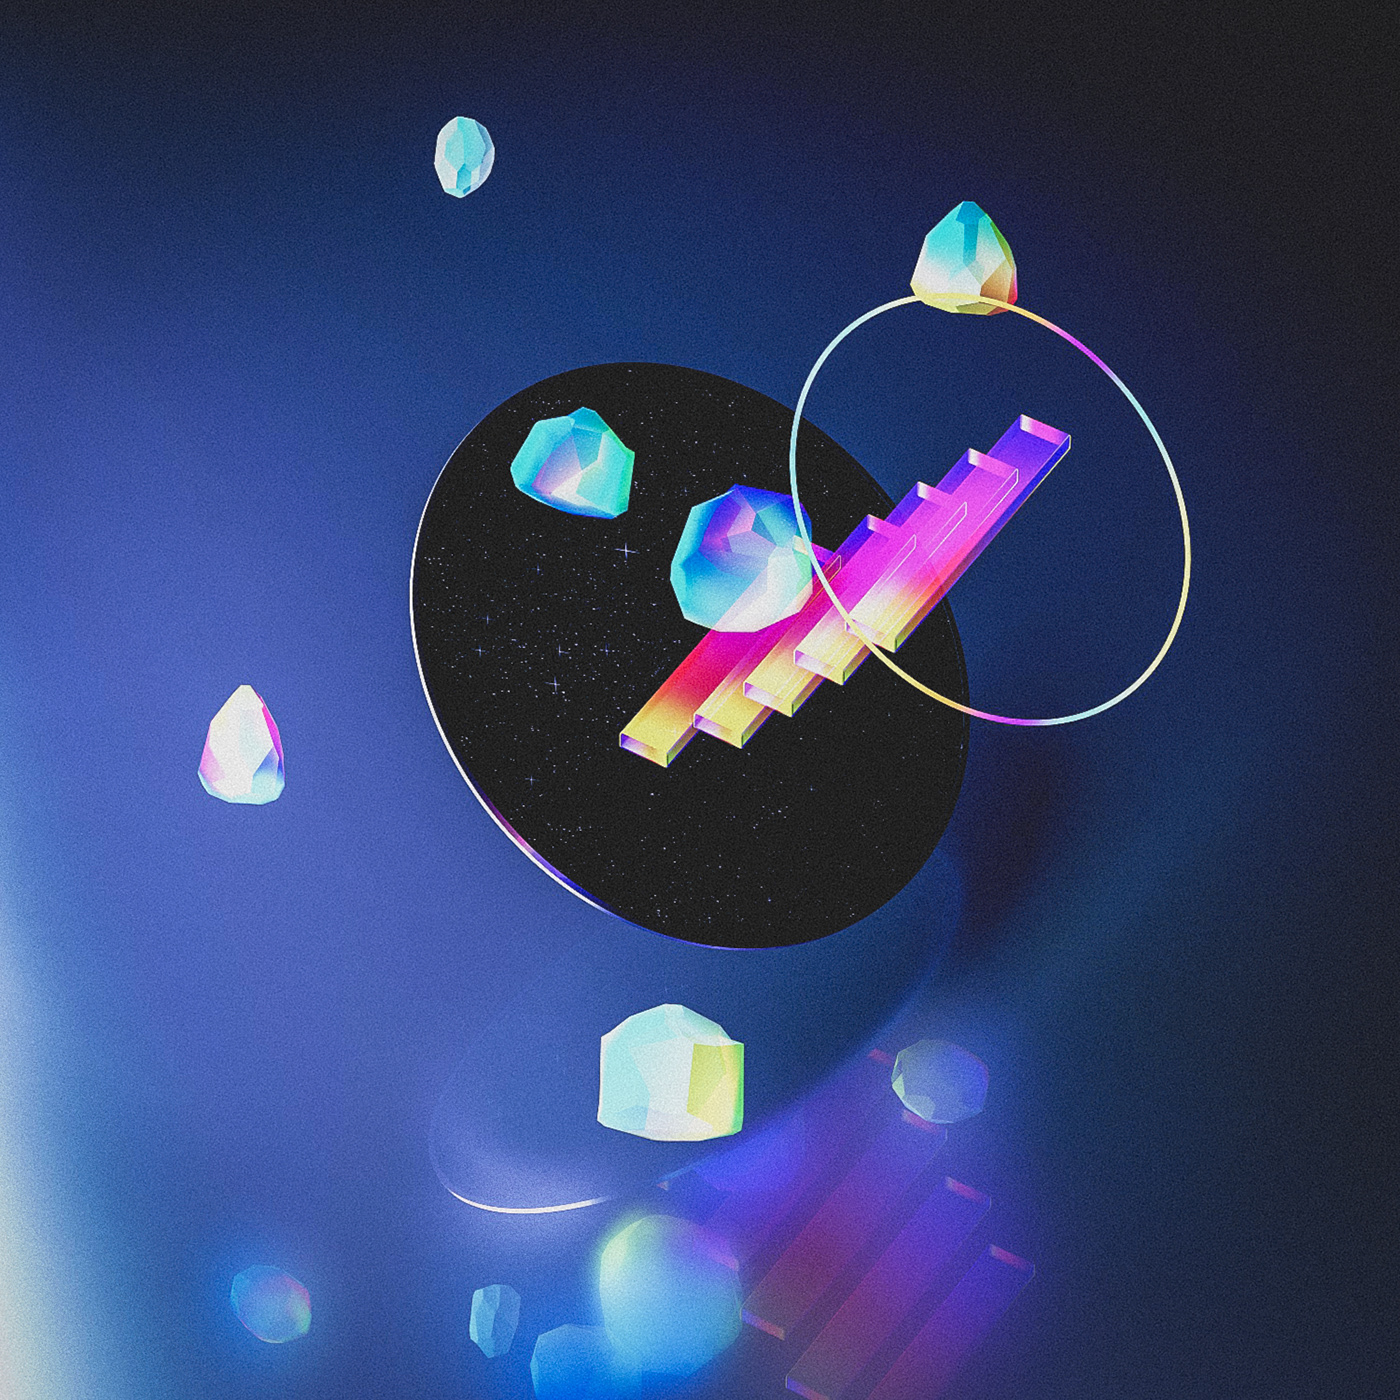 Space  Planets cinema 4d galaxy Galaxia Synthwave vaporwave iridescent neon Retro